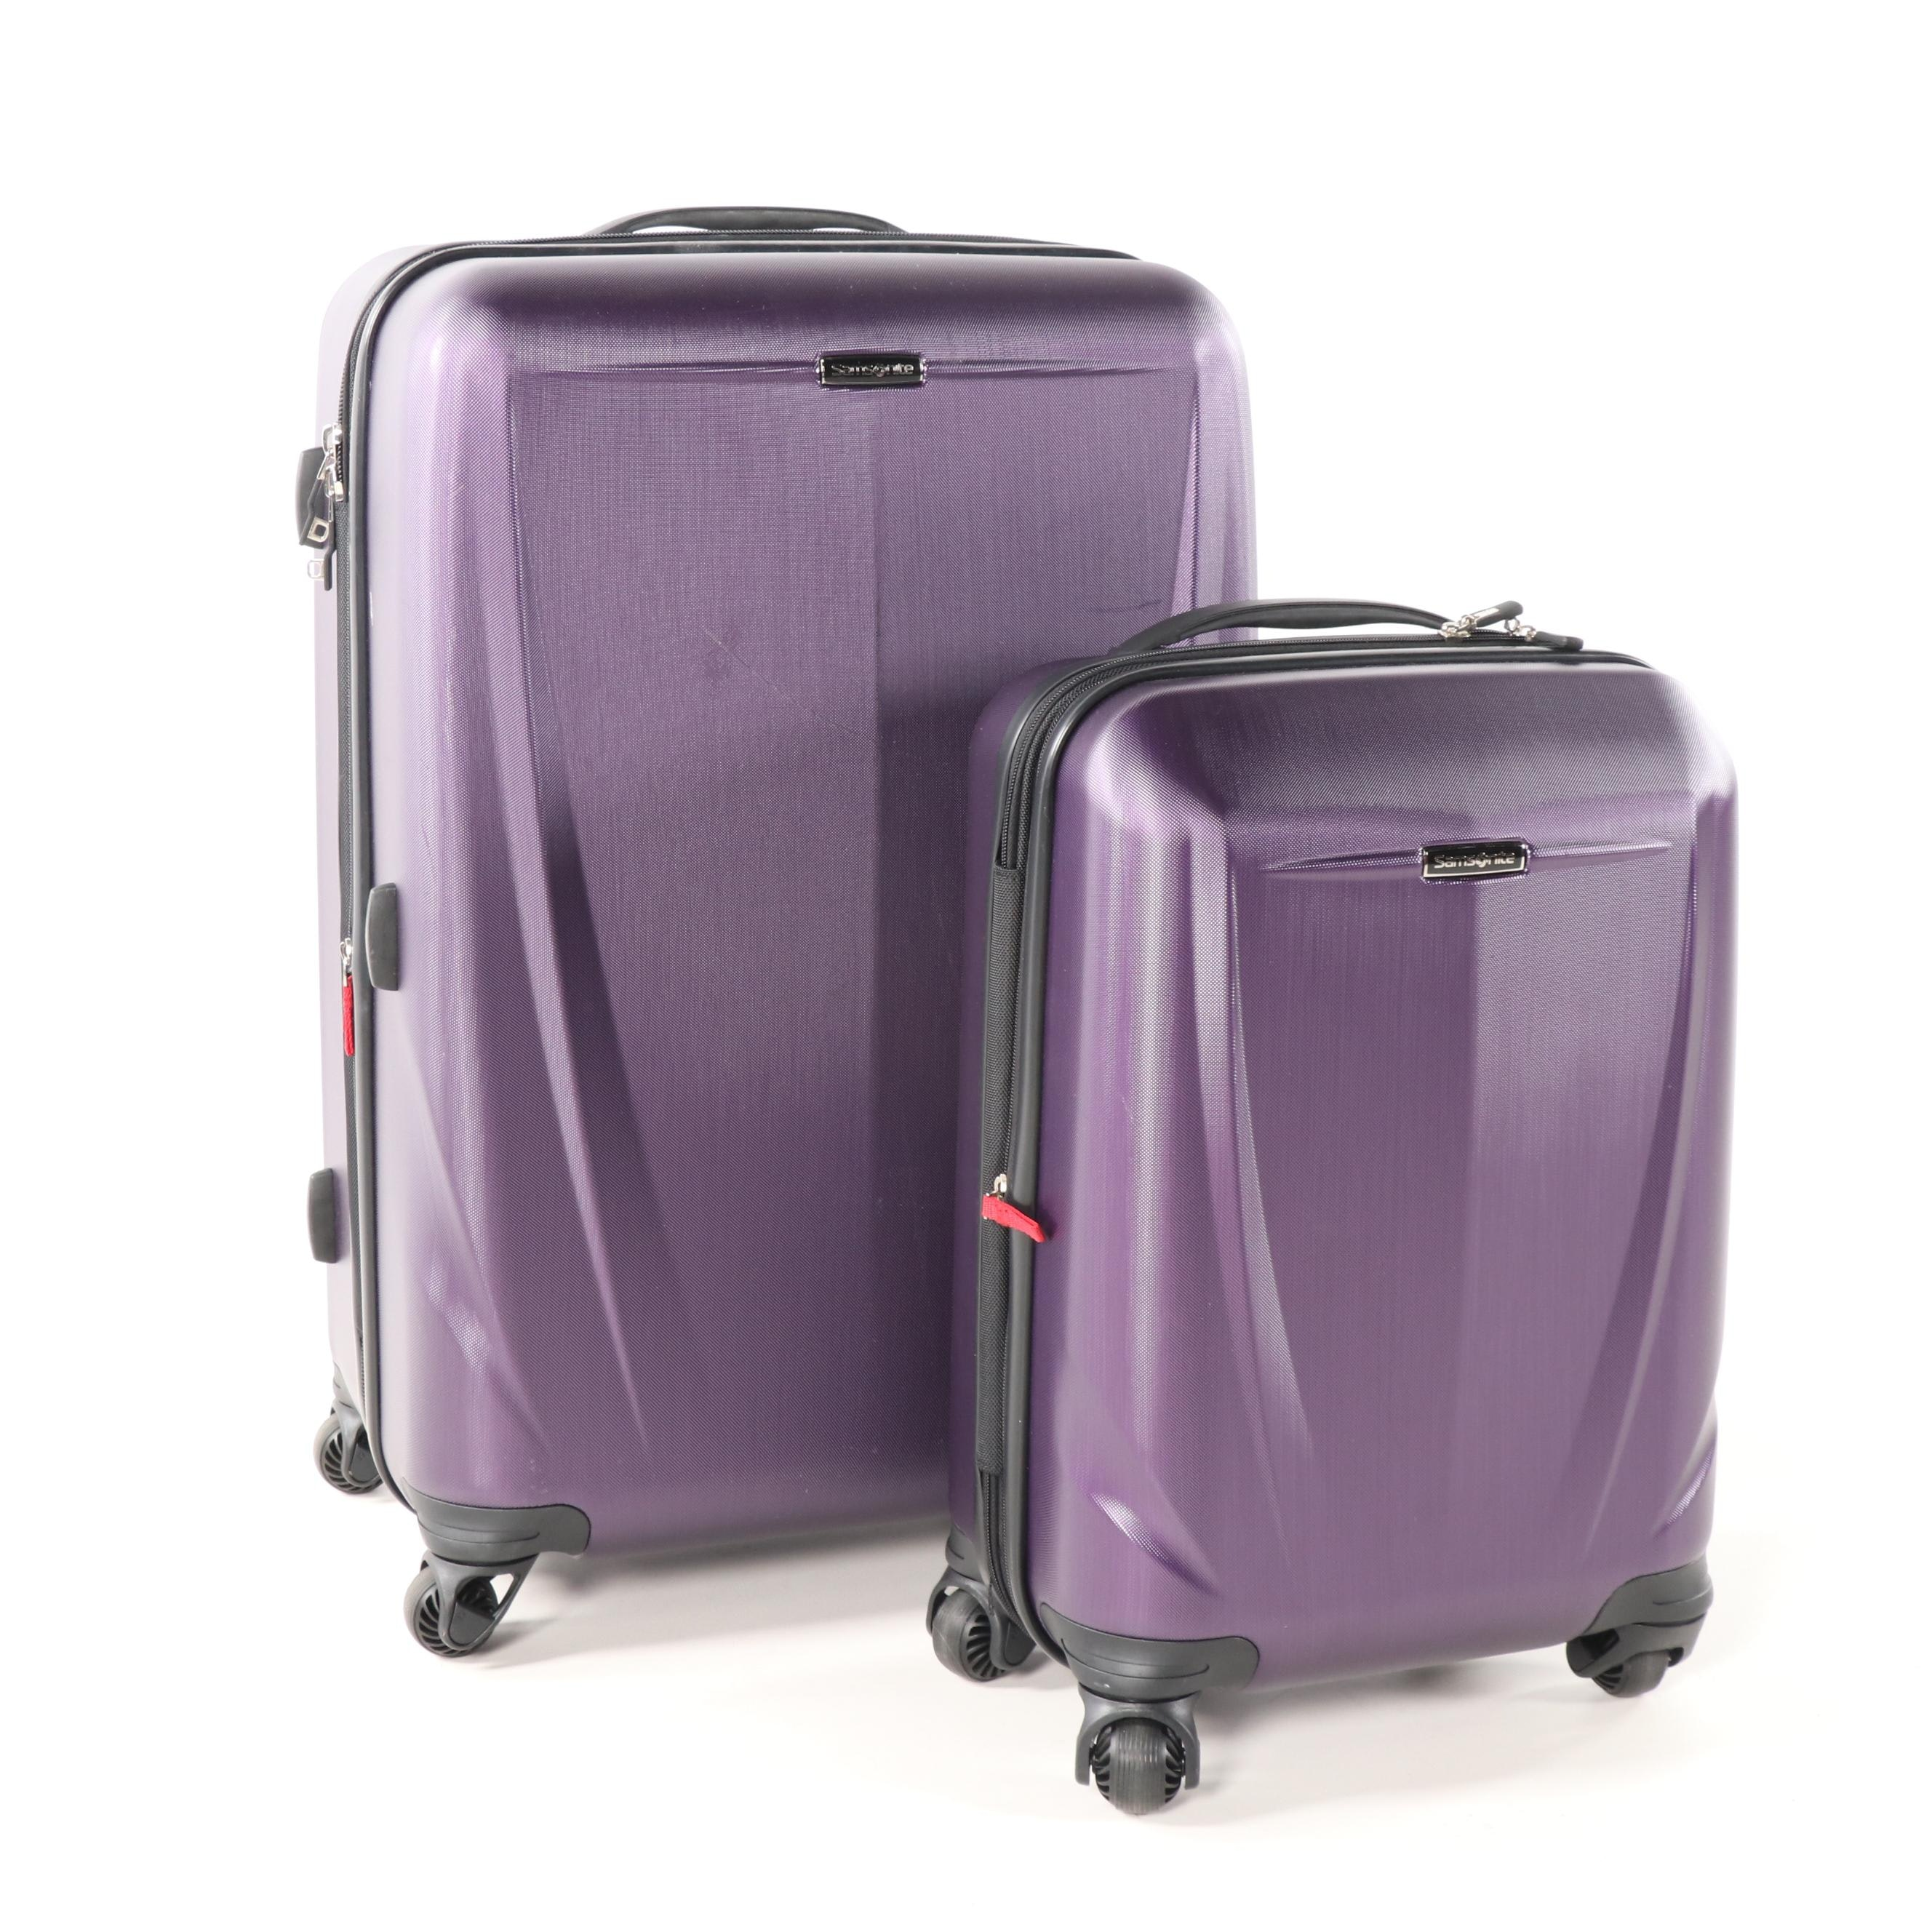 Samsonite Sphere DLX Purple Two-Piece Hardside Spinner Luggage Set